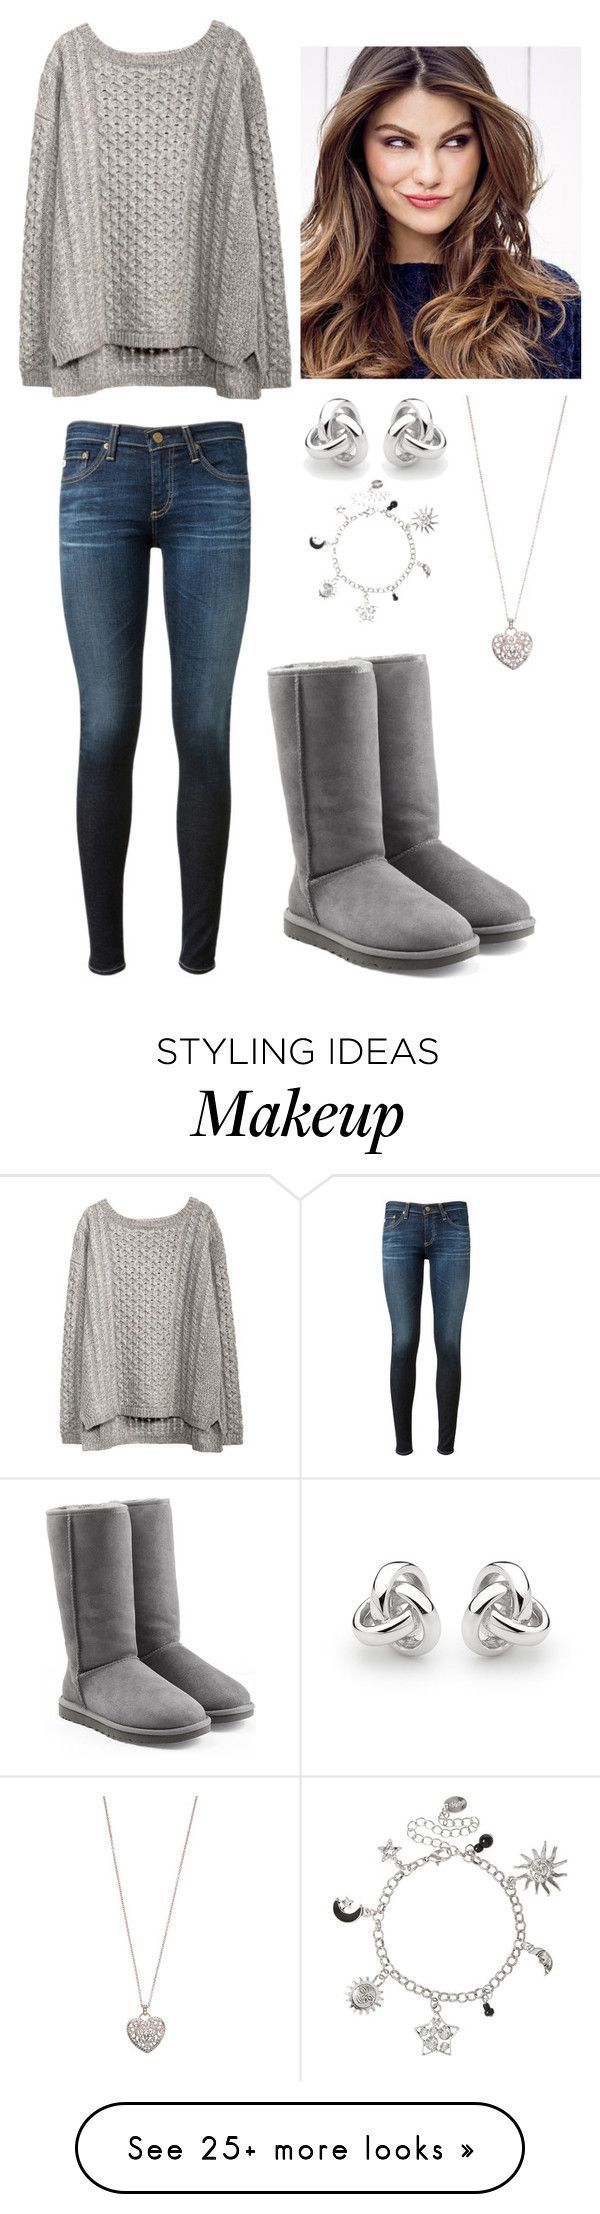 """""""Bonfire Night (:"""" by bailee-givens on Polyvore featuring AG Adriano Goldschmied, Georgini, Accessorize, UGG Australia and ULTA"""